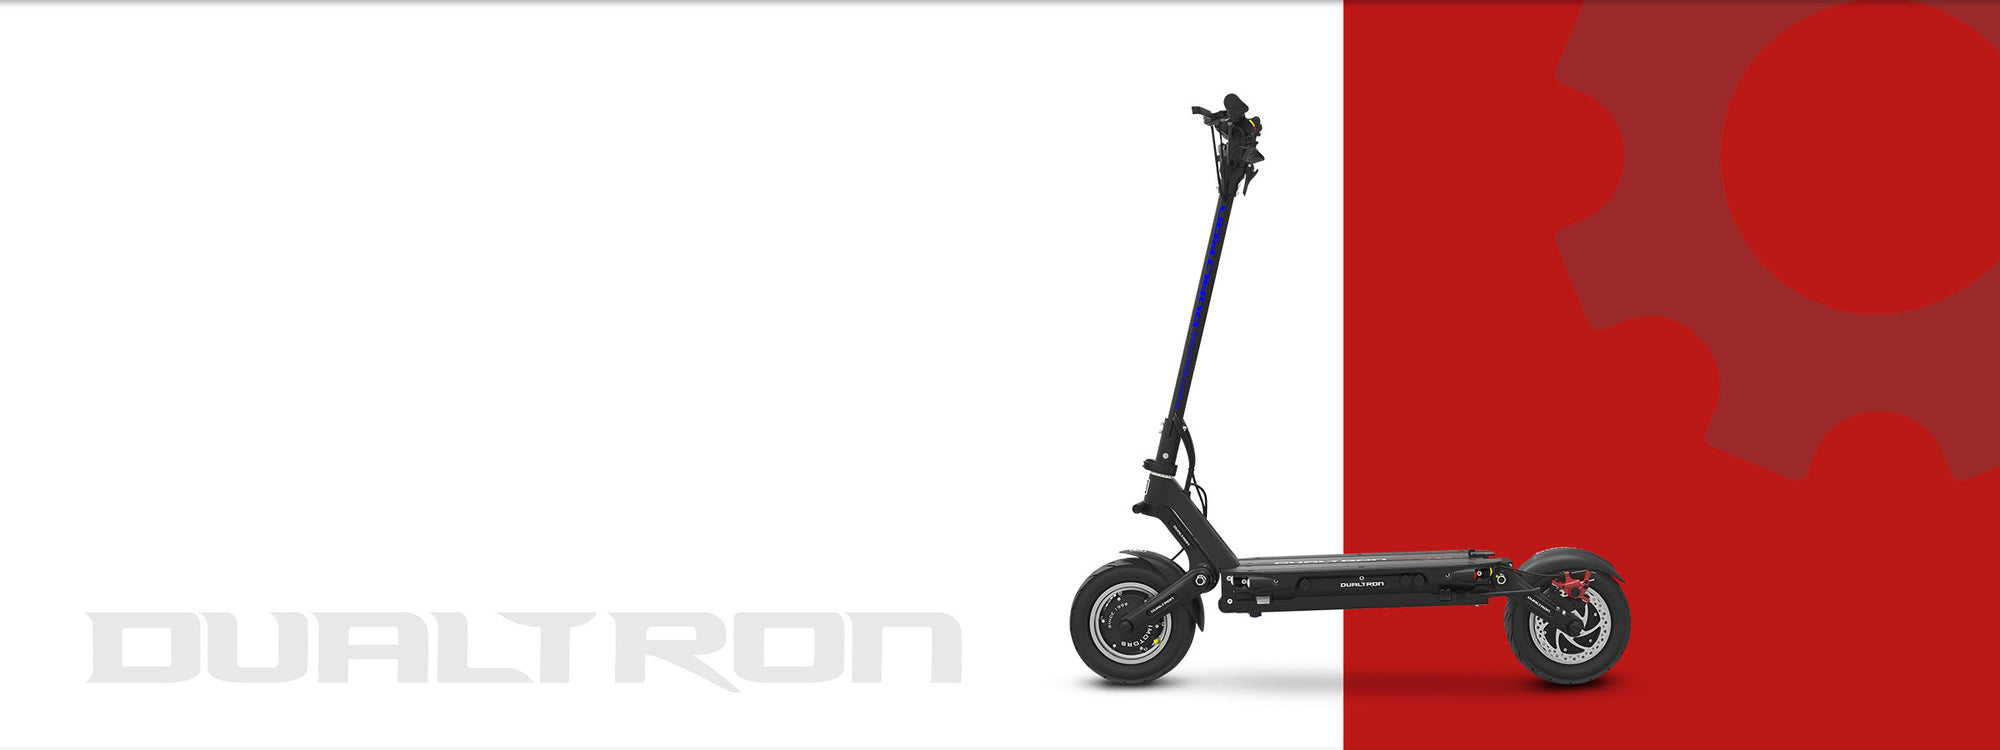 Dualtron Thunder - The fastest electric scooter in the world